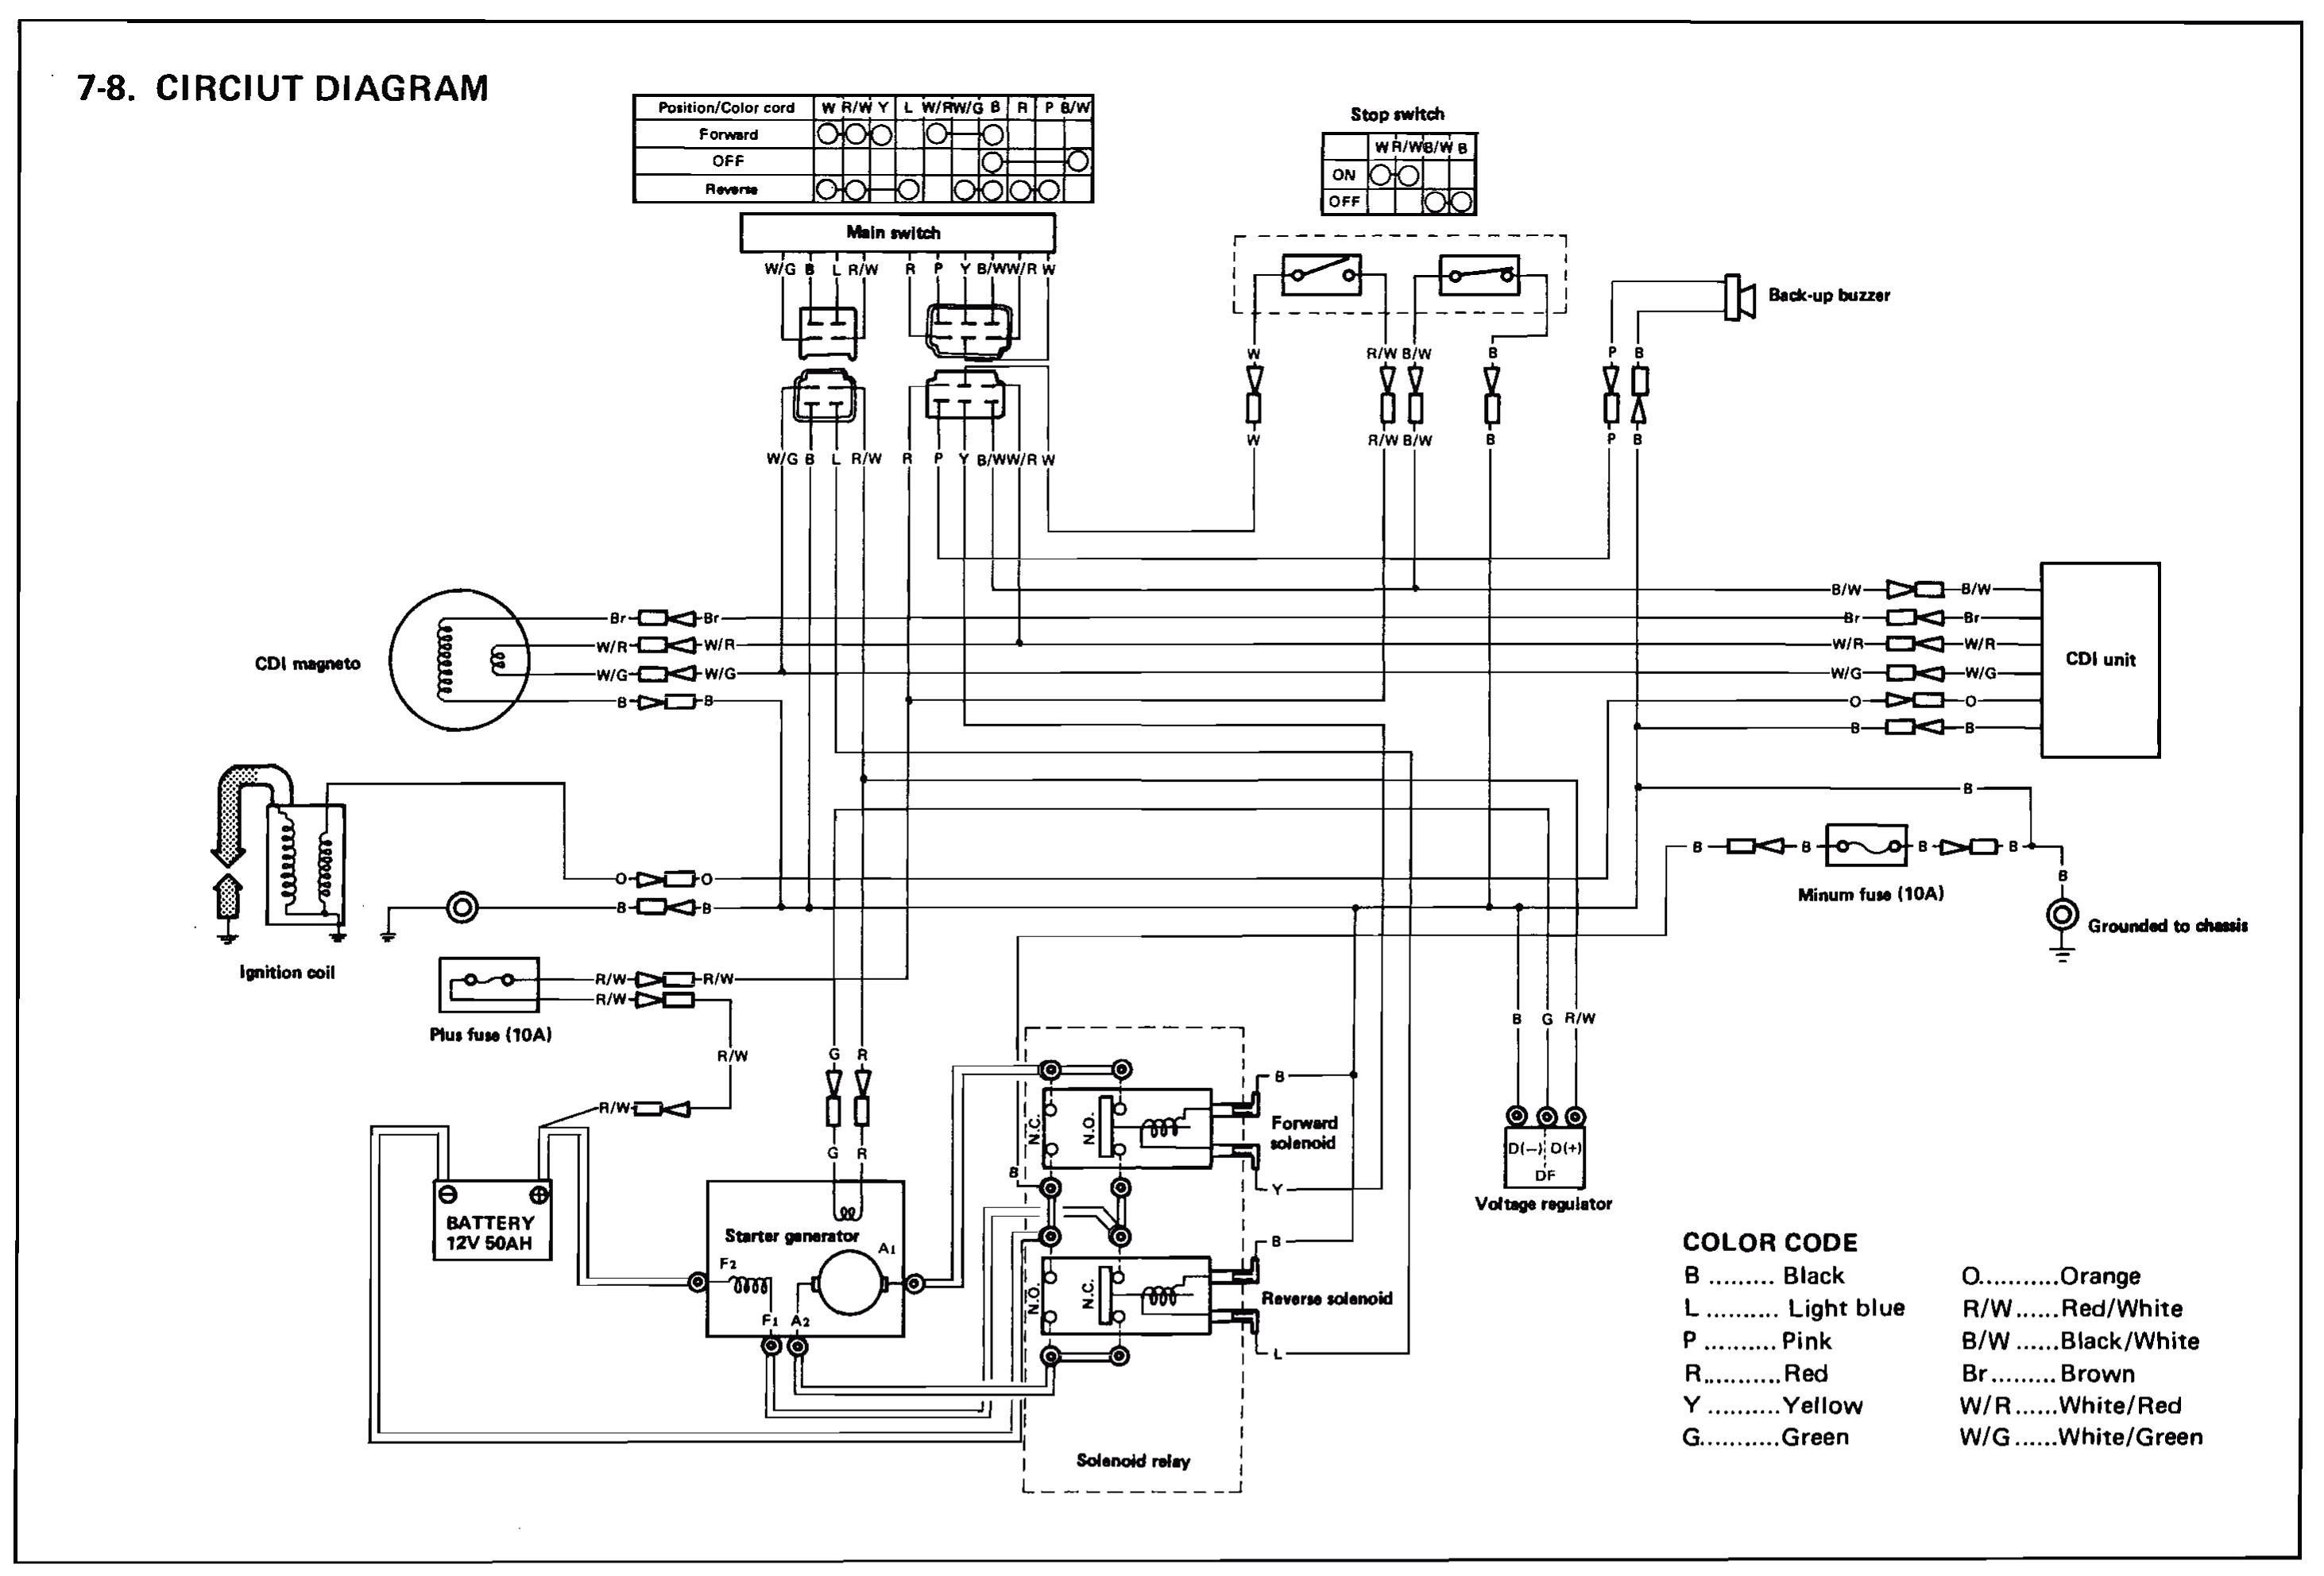 Hes 9600 12 24d 630 Wiring Diagram - Wiring Diagram Detail Name Hes 9600 12 24d 630 Wiring Diagram 17e